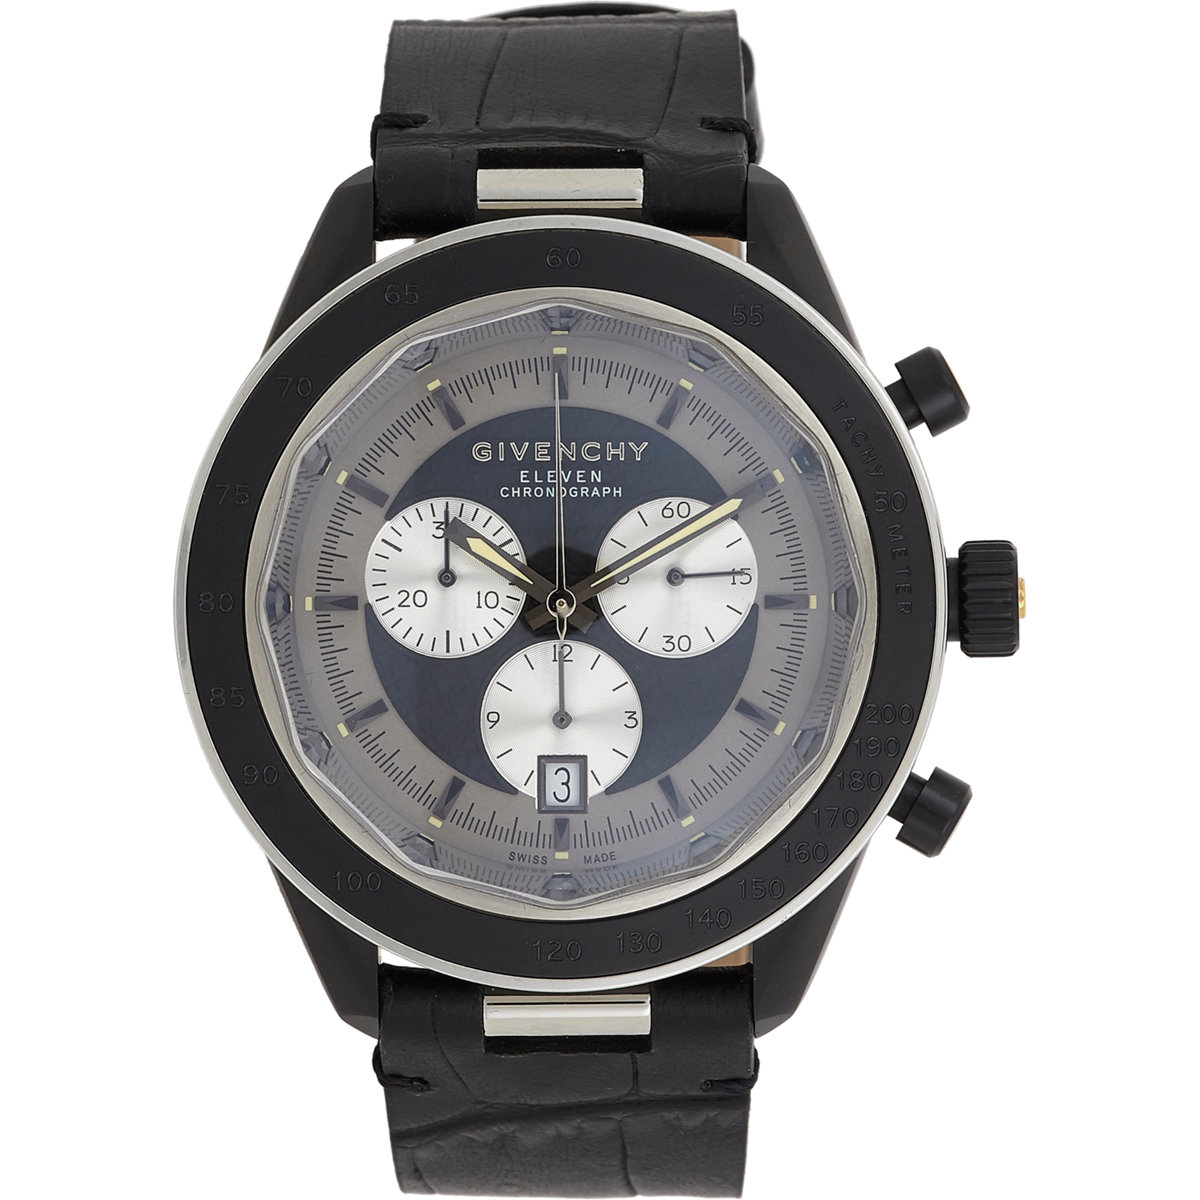 Givenchy eleven chronograph watch in black lyst for Givenchy watches